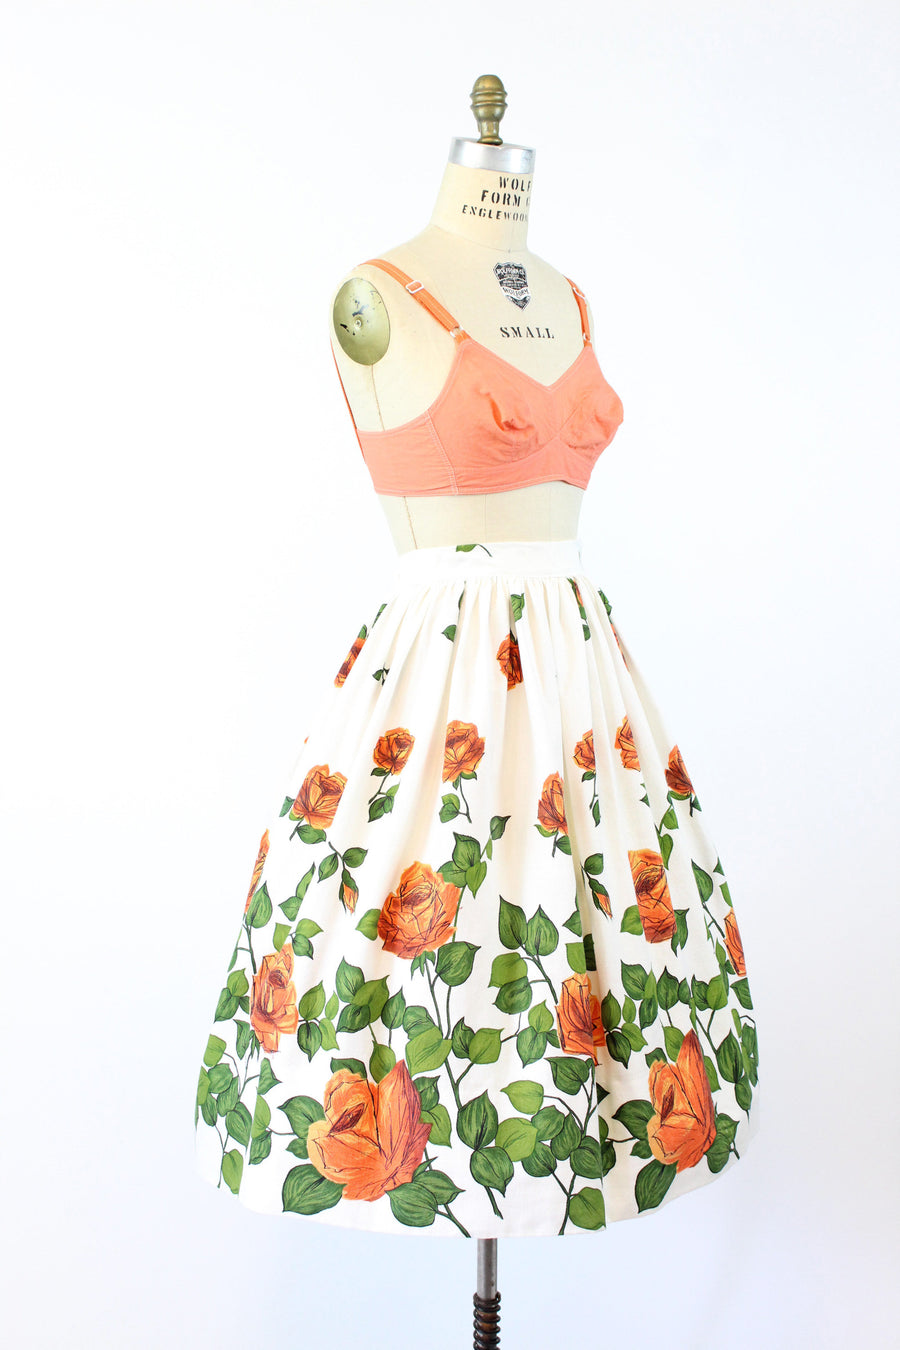 1950s fruit of the loom rose print skirt small medium | cotton pique skirt | new in